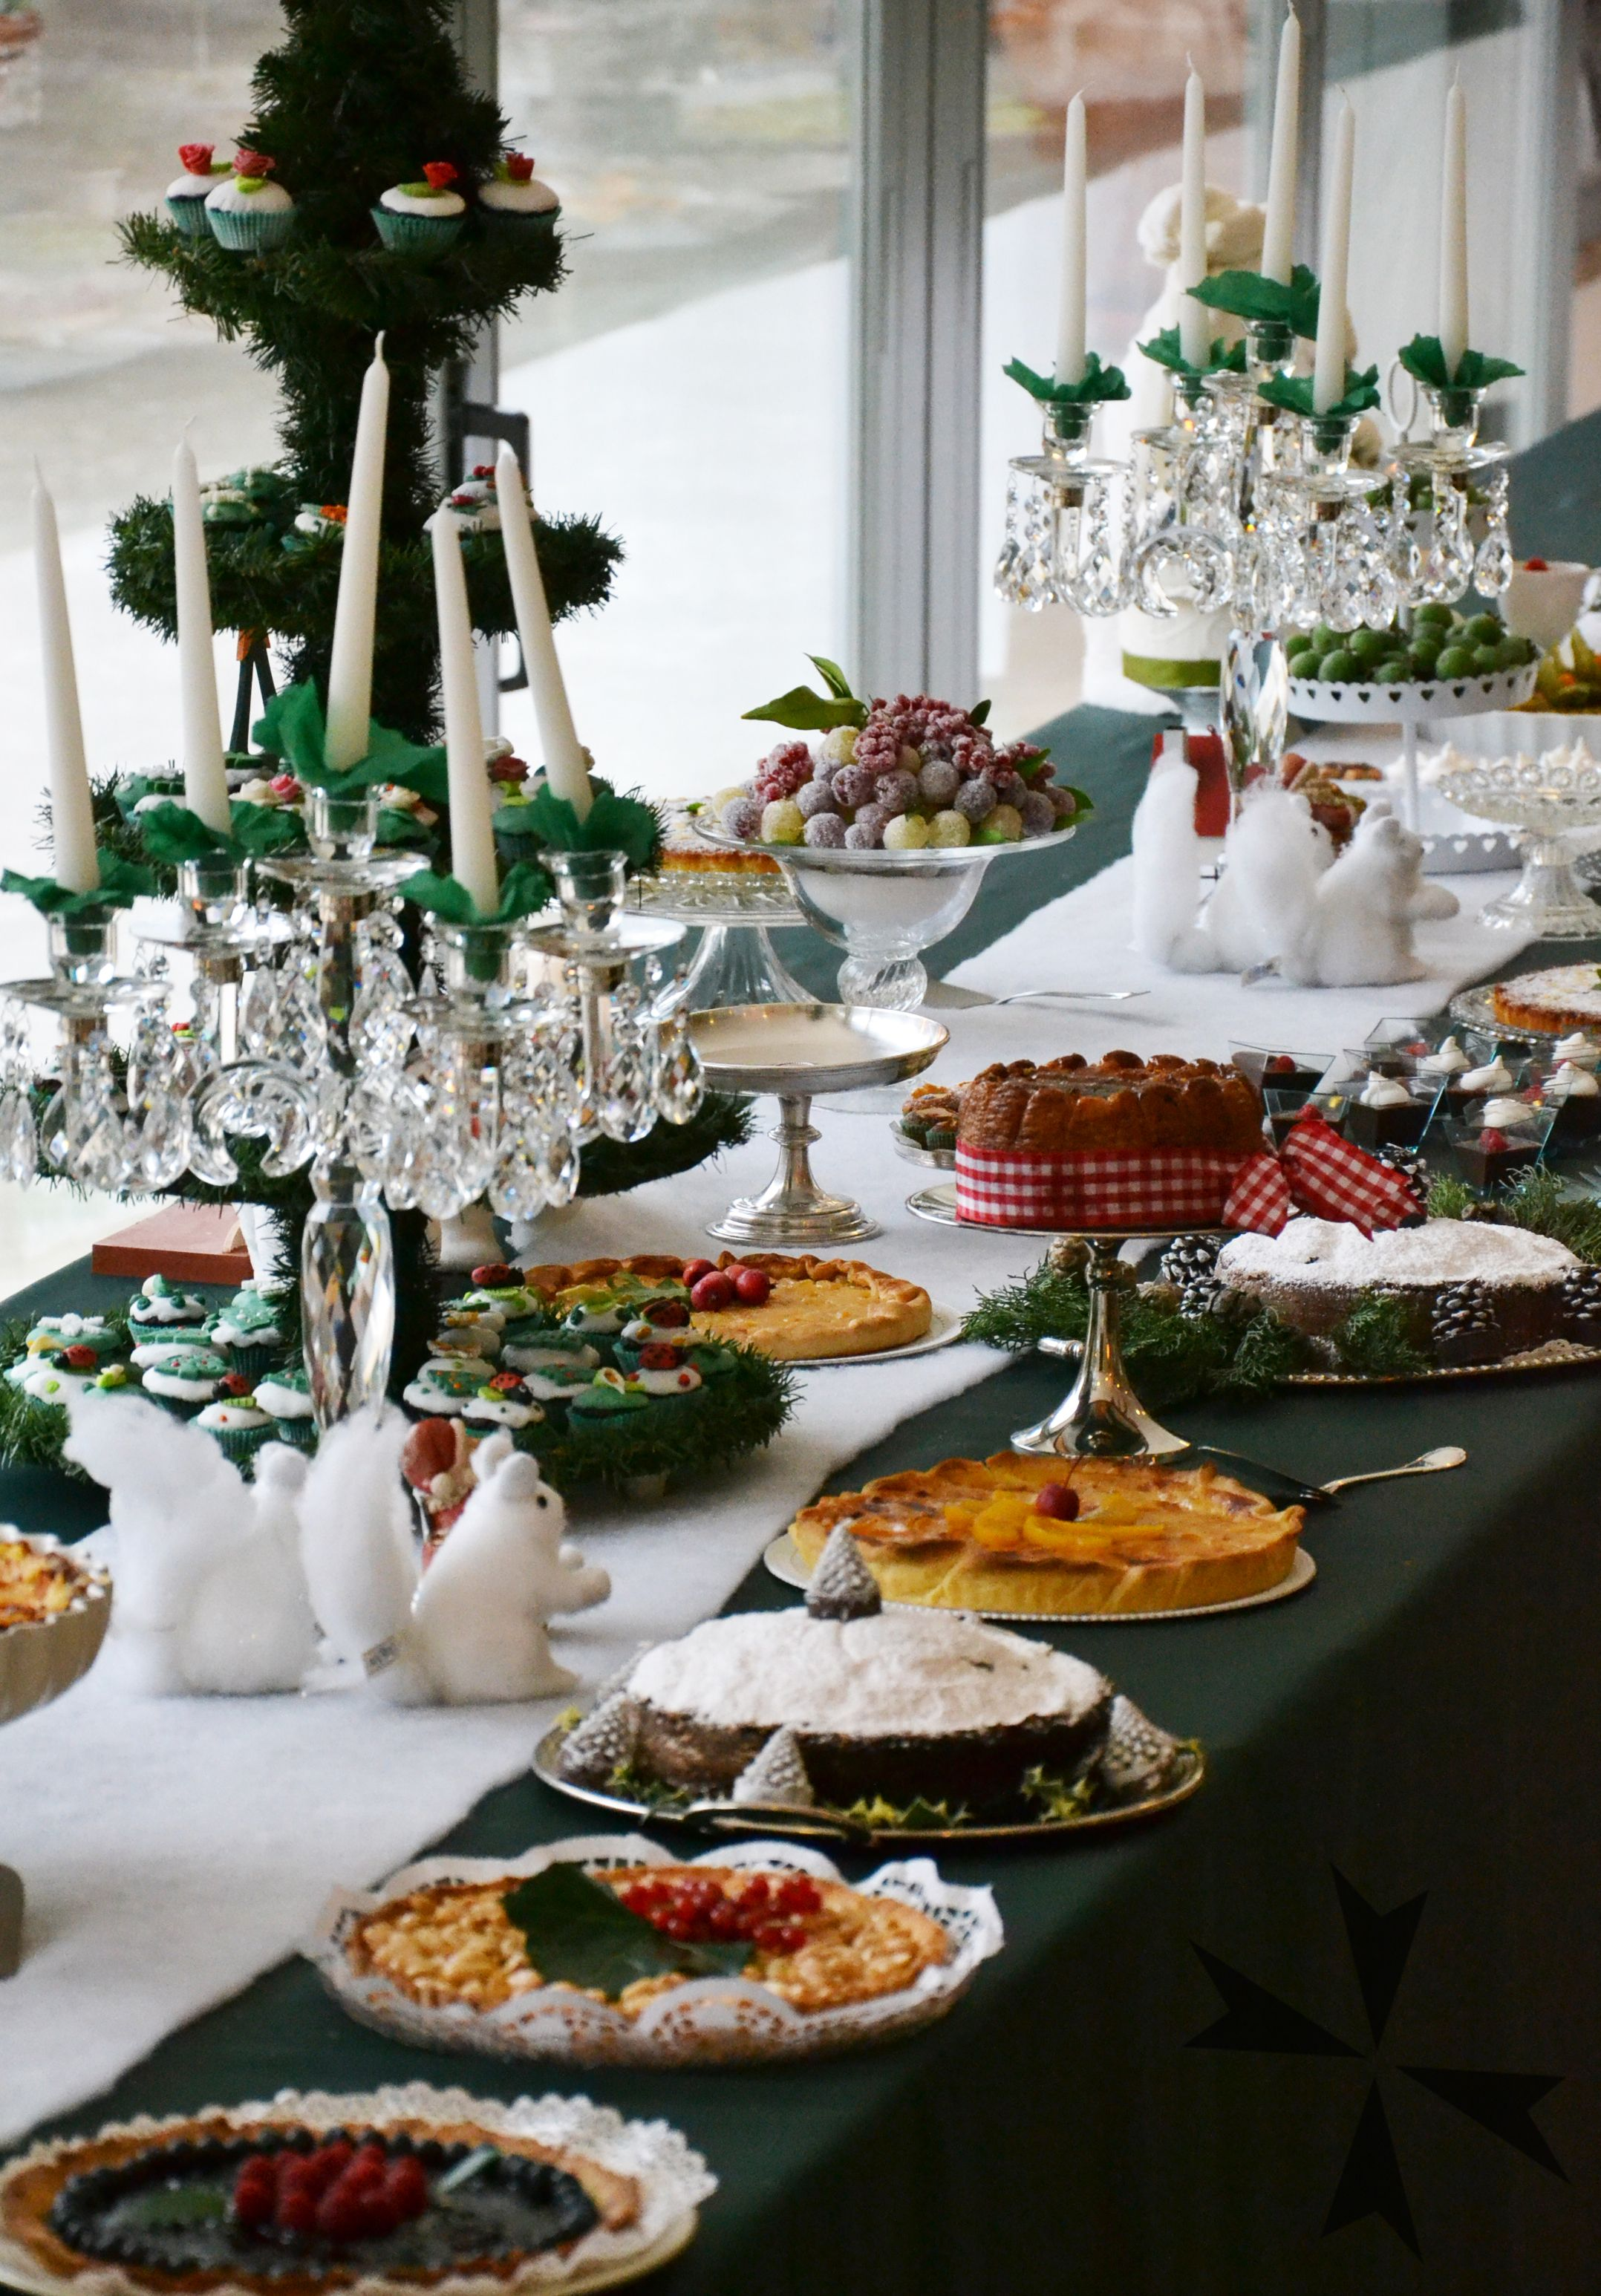 Un #buffetdiNatale davvero goloso!  A #Christmasbuffet really delicious!